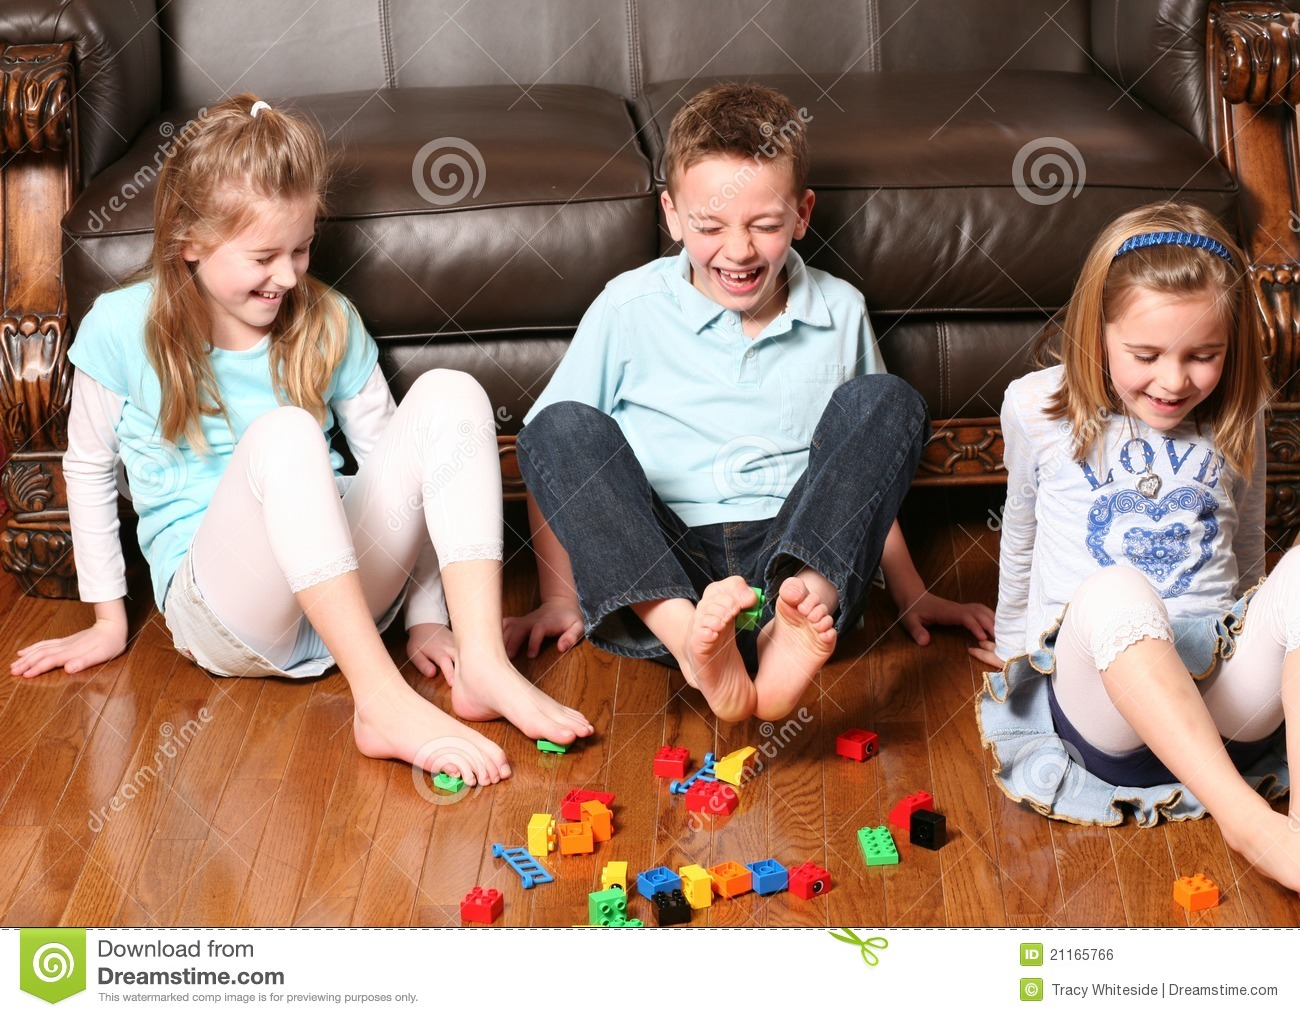 Three childrens playing with blocks with their feet.